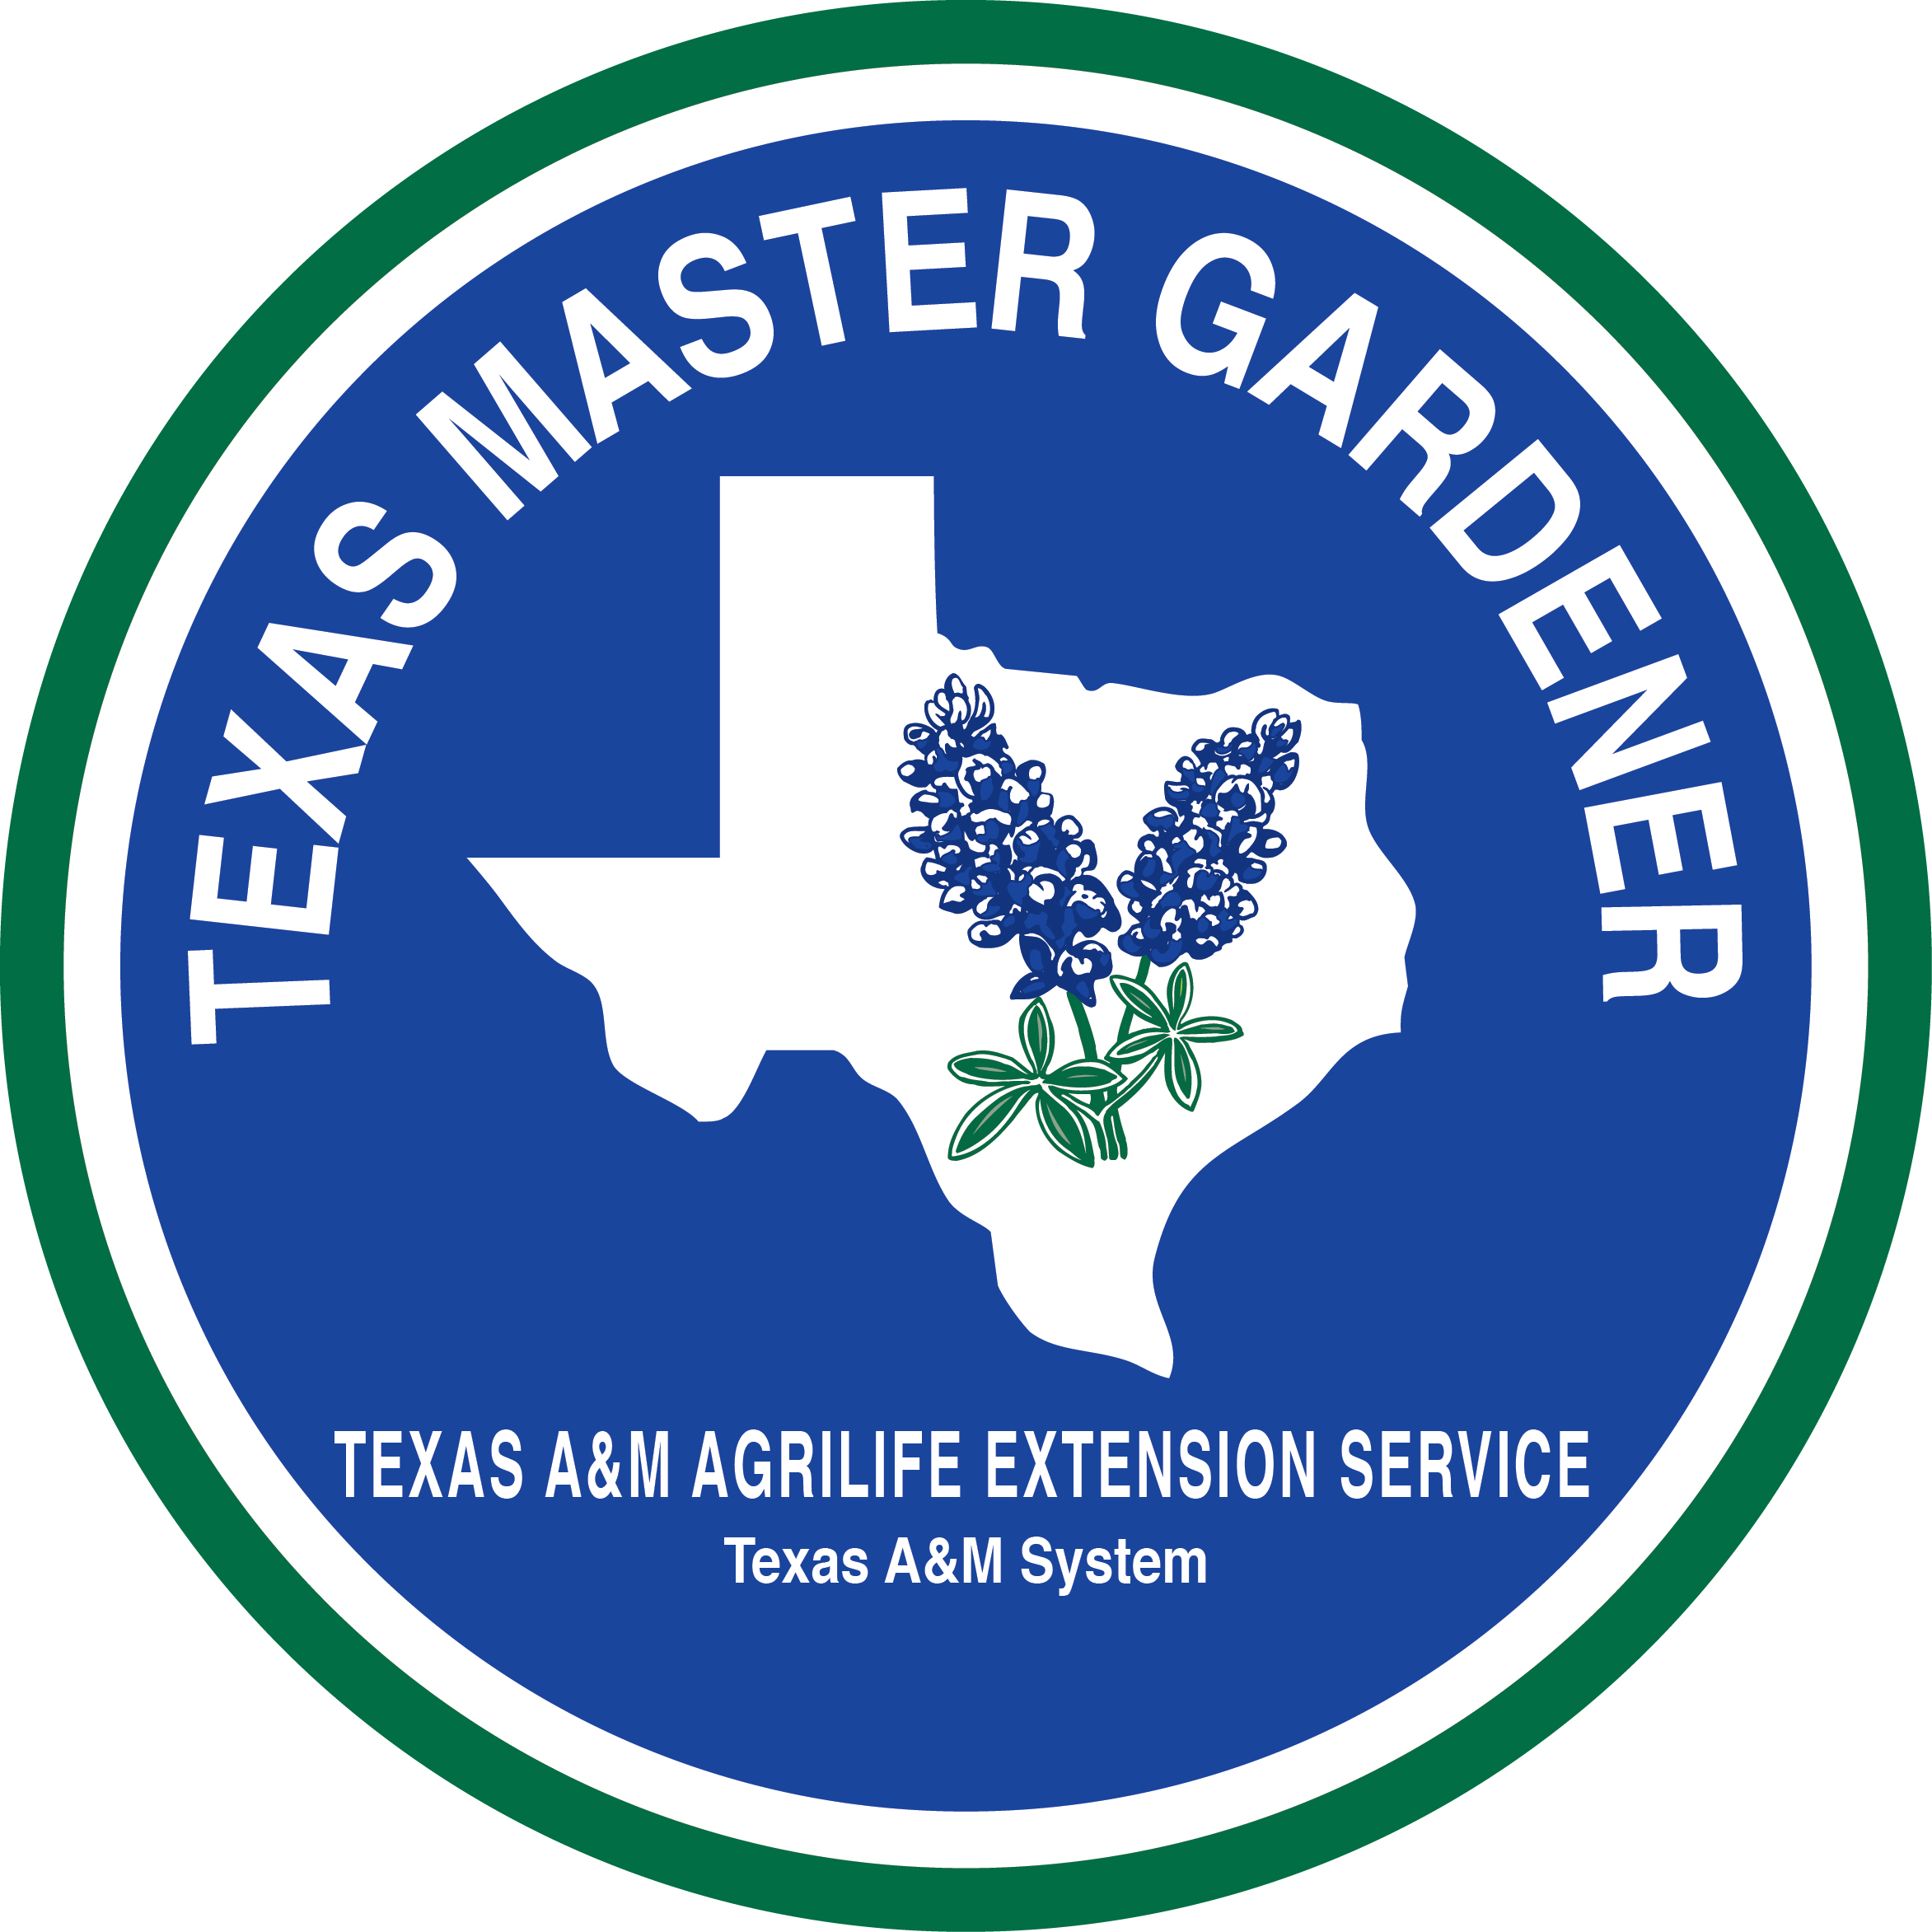 Hays County Master Gardener Association announces 2019 training course